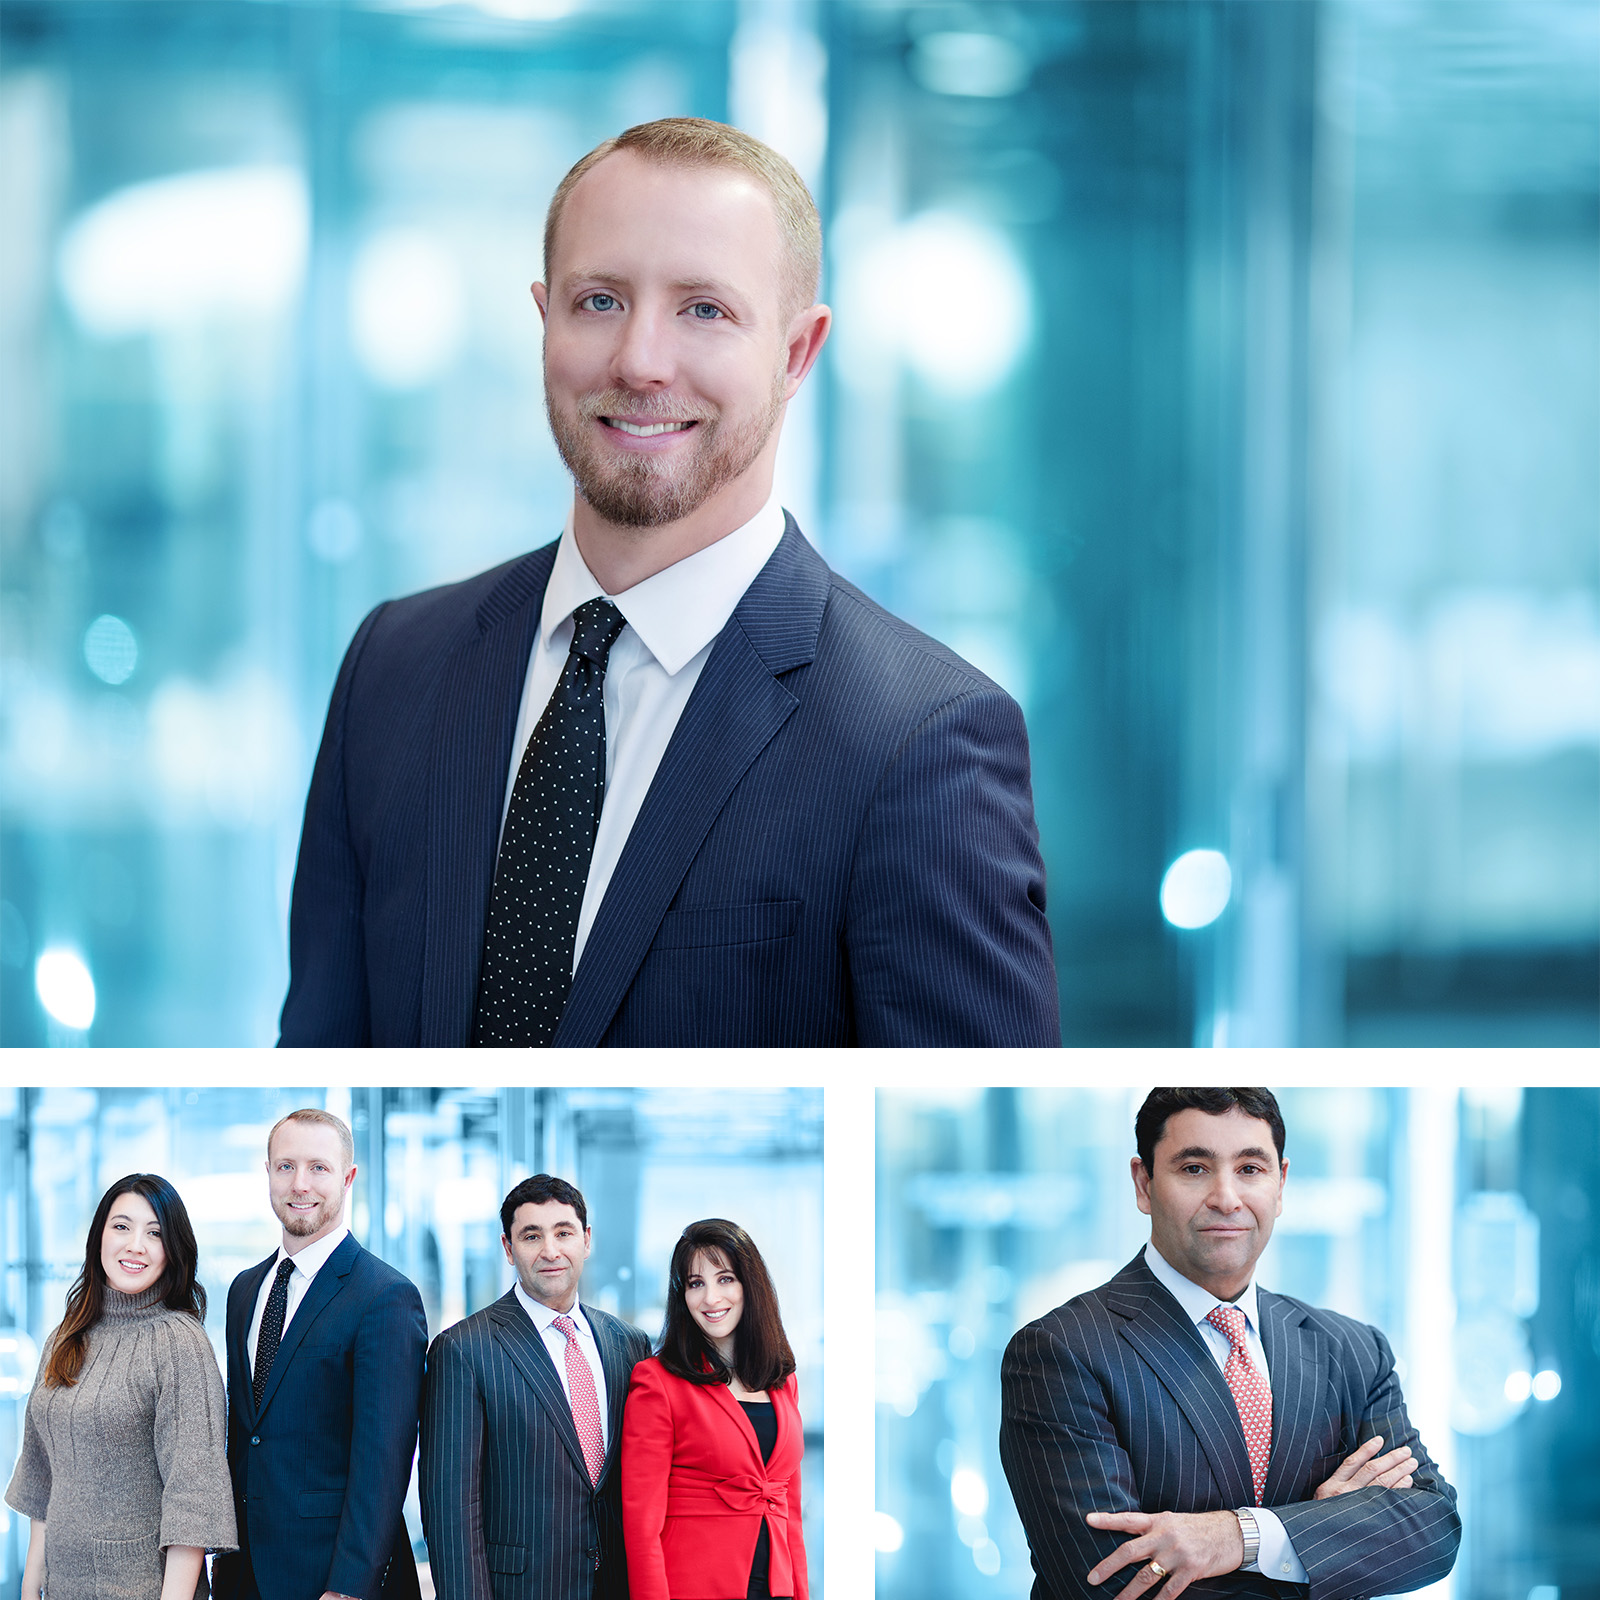 denver-business-headshots-collage-sm.jpg